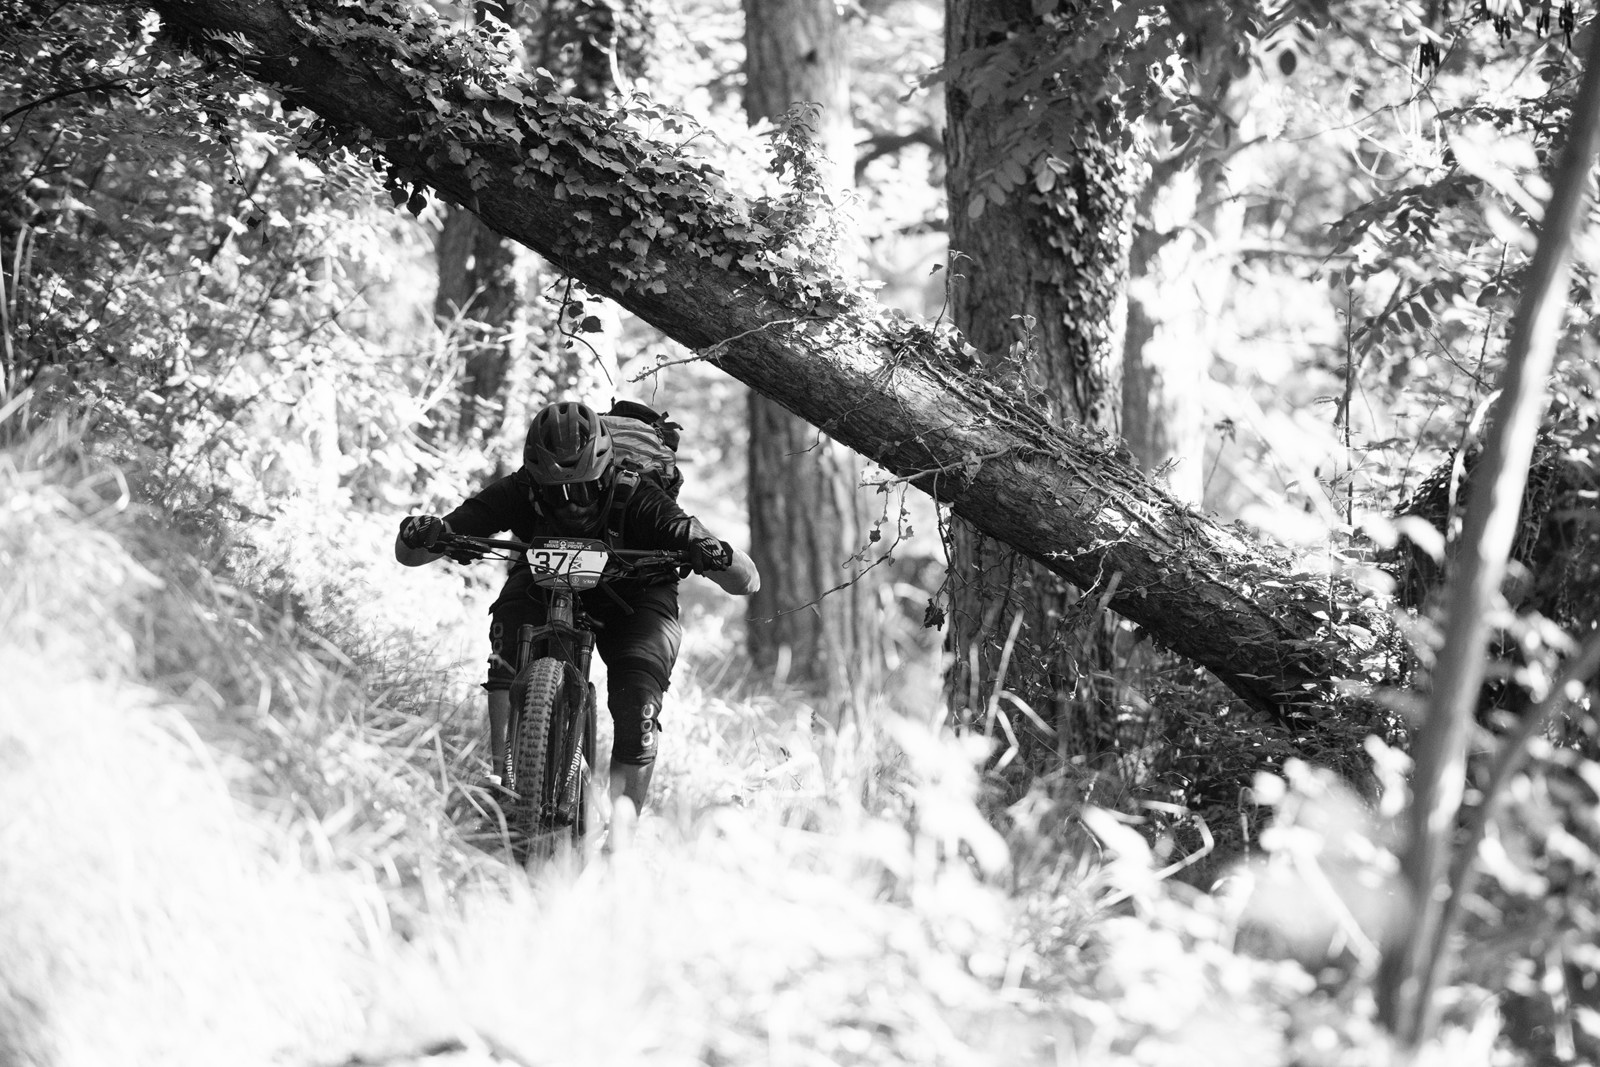 2019 Trans-Provence Day 4 Photo Gallery and Video - 2019 Trans Provence Day 4 Photo Gallery and Video - Mountain Biking Pictures - Vital MTB